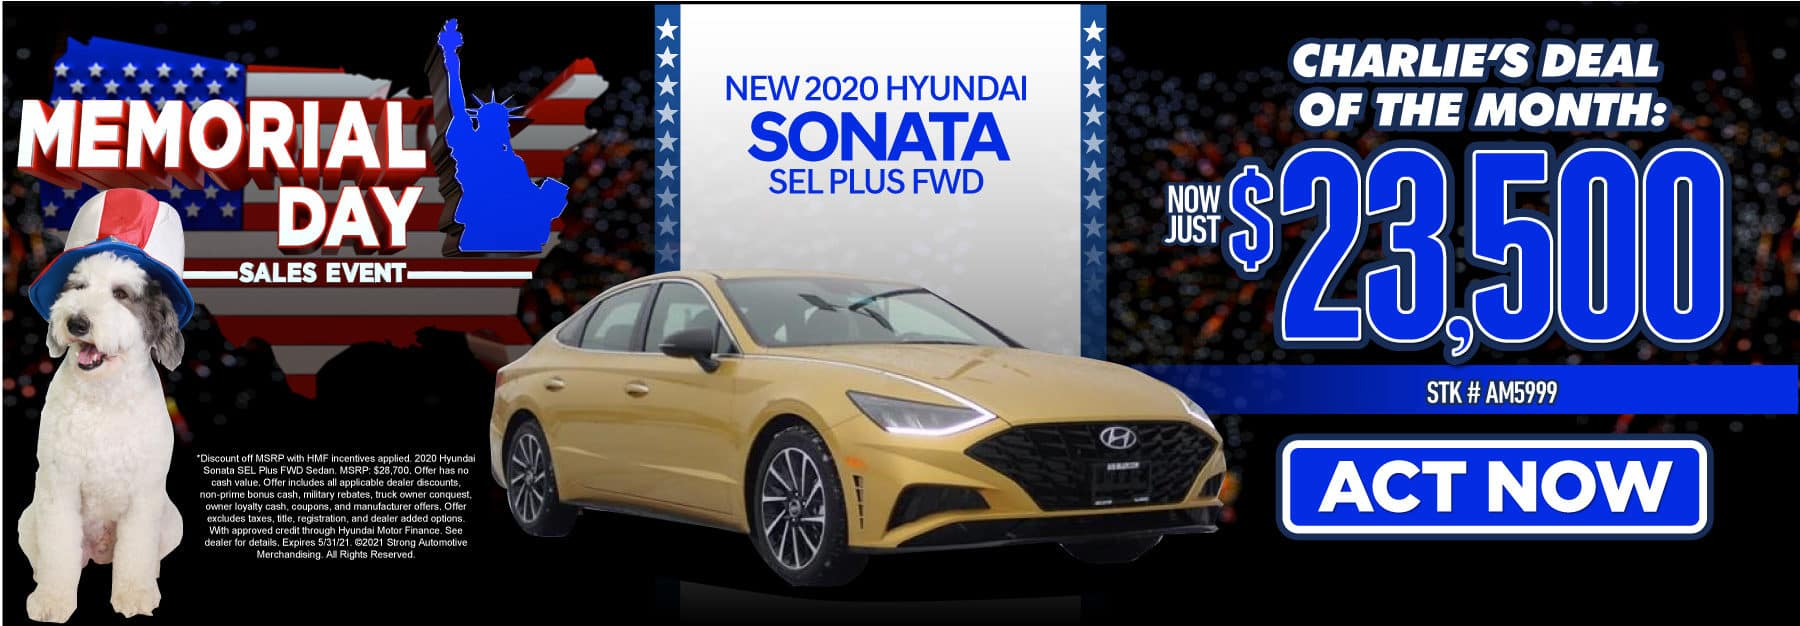 New 2020 Hyundai Sonata | Charlie's Deal of the Month: Now Just $23,500 | Act Now